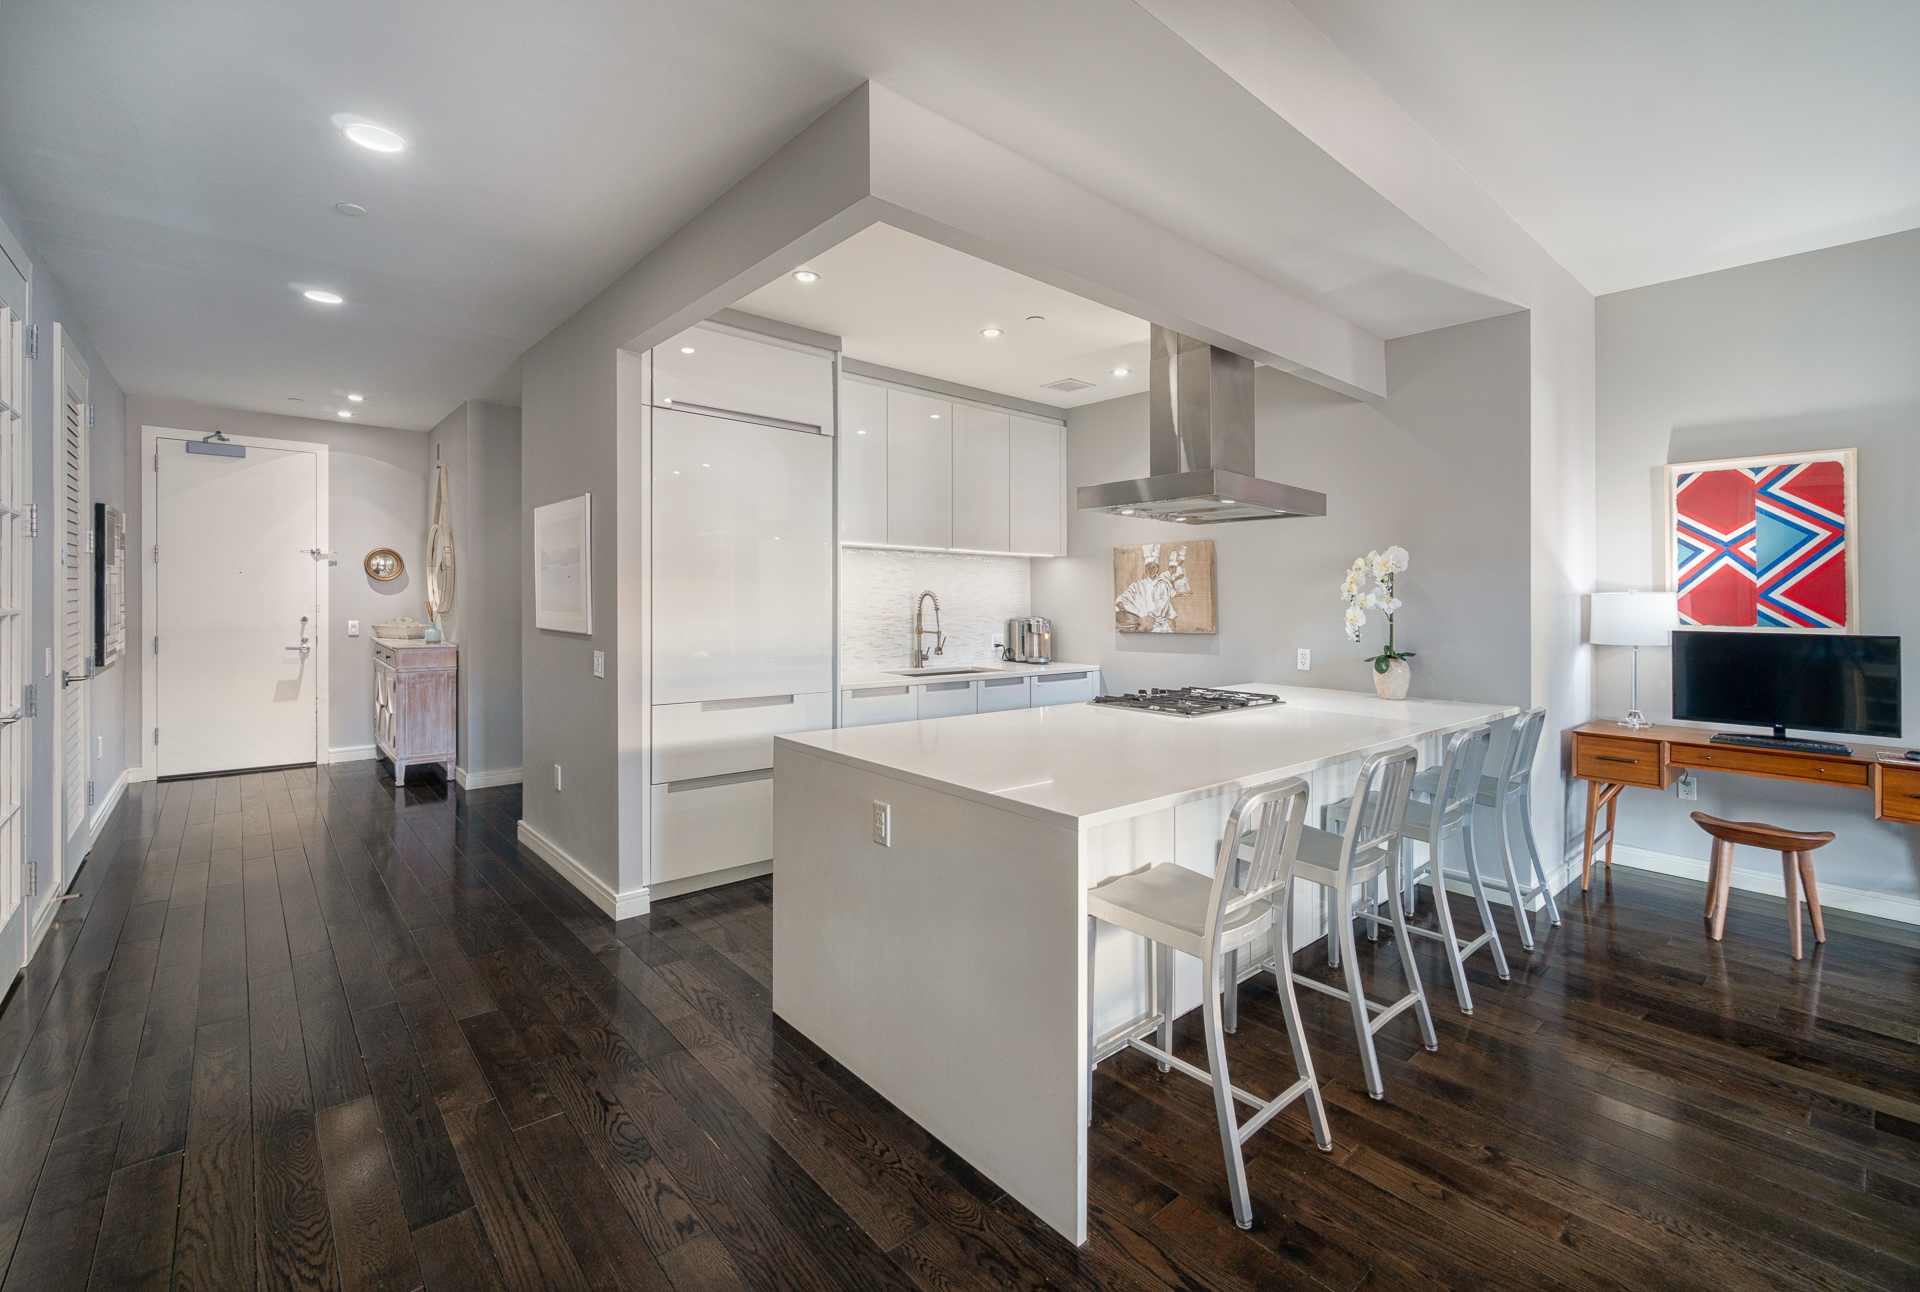 In TriBeCa's landmark historic district, this 2 bedroom, 3-bathroom, luxury home with an office is spectacular with a great layout and modern finishes. You enter through a long hallway into the stunning open concept kitchen and living space. The apartment brandishes 10-foot ceilings, 5-inch plank oak floors, an open concept living room, chef's kitchen with Poggenpohl cabinetry, white quartz countertops, imported glass tile backsplash, Sub-Zero refrigerator, and Bosch stove, range and dishwasher. The master suite has an oversized custom walk-in closet and the marble clad master bath sports a walk-in shower, 6-foot Catalina soaking tub, and porcelain dual sinks. The second bedroom is spacious and has an on-suite bathroom. The home office/accessory space (currently setup as a nursery) has French doors that provides privacy when needed and could easily accommodate a queen bed with room to spare to provide an additional sleeping space. The unit includes three full baths. The home comes complete with a Bosch washer and dryer and Sonos ready speakers. The 24/7 doorman building hosts impressive amenities including a fitness center, children's playroom, library, 61-foot pool, sauna, 5000 square foot common roof terrace with panoramic views, sundeck, lounge and dining area. The neighborhood offers some of the best restaurants in the city as well as the Hudson River waterfront (Piers 25 and 26) and close proximity to Whole Foods.